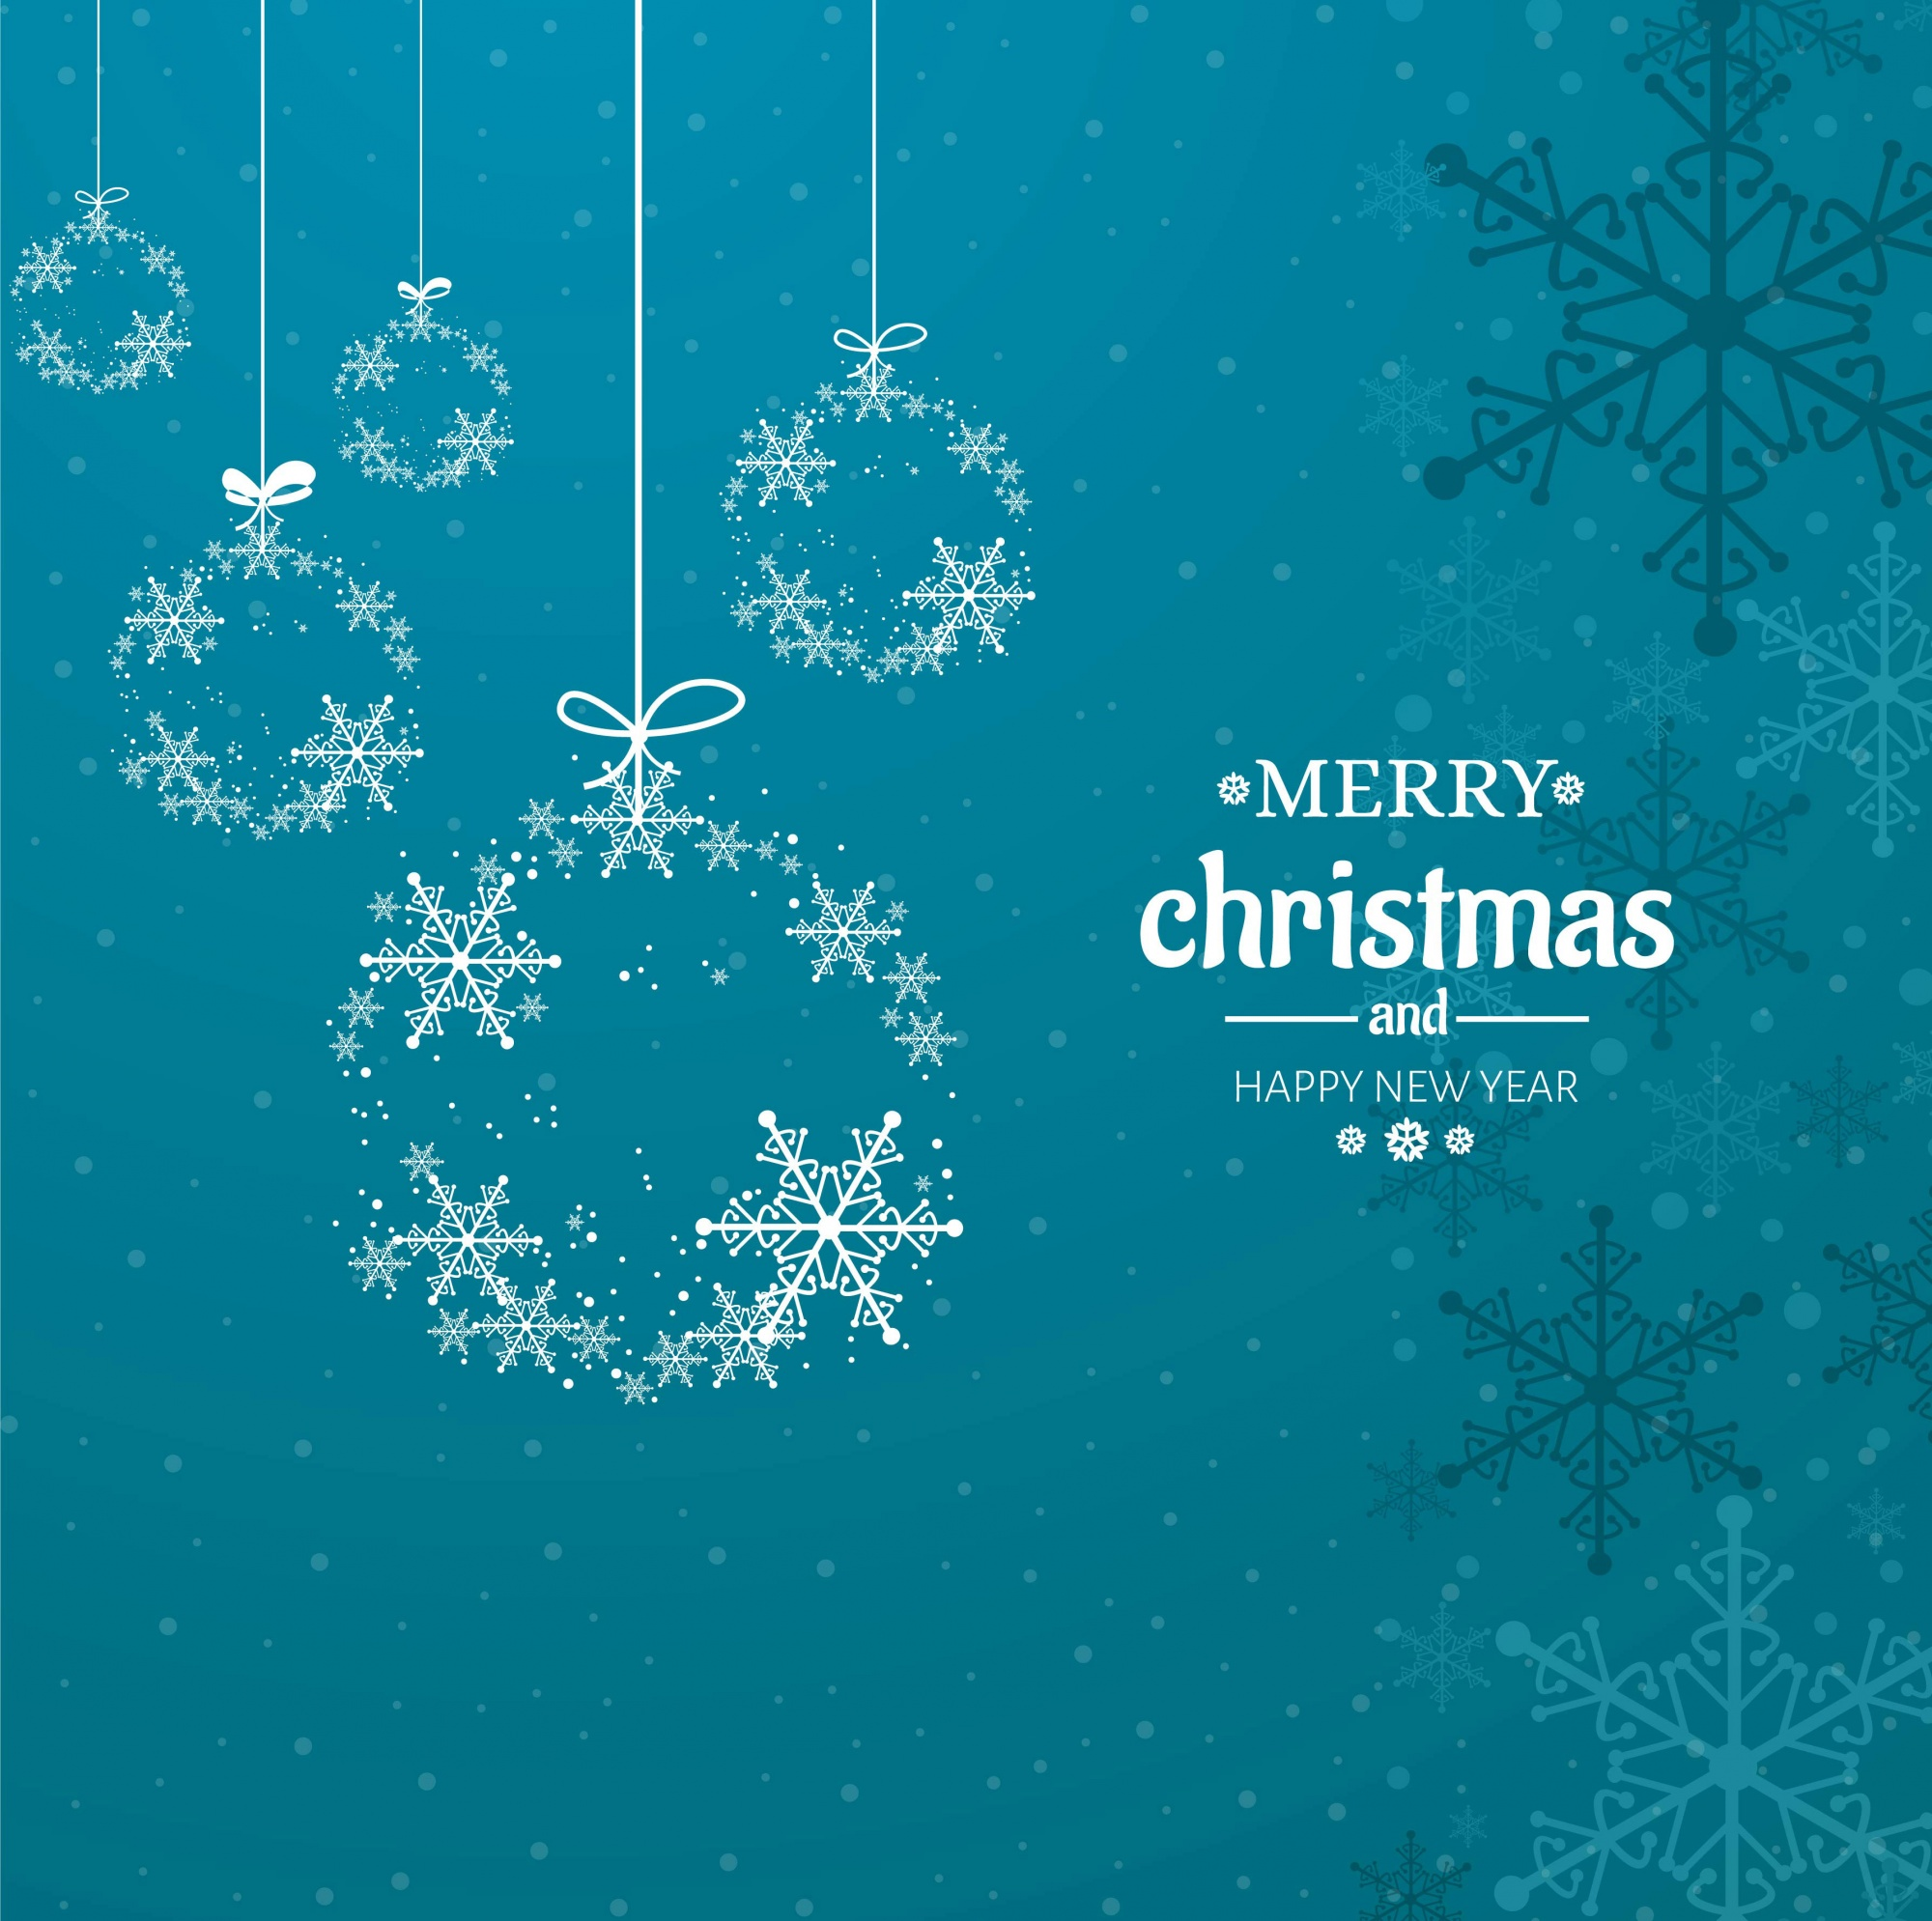 Modern merry christmas background